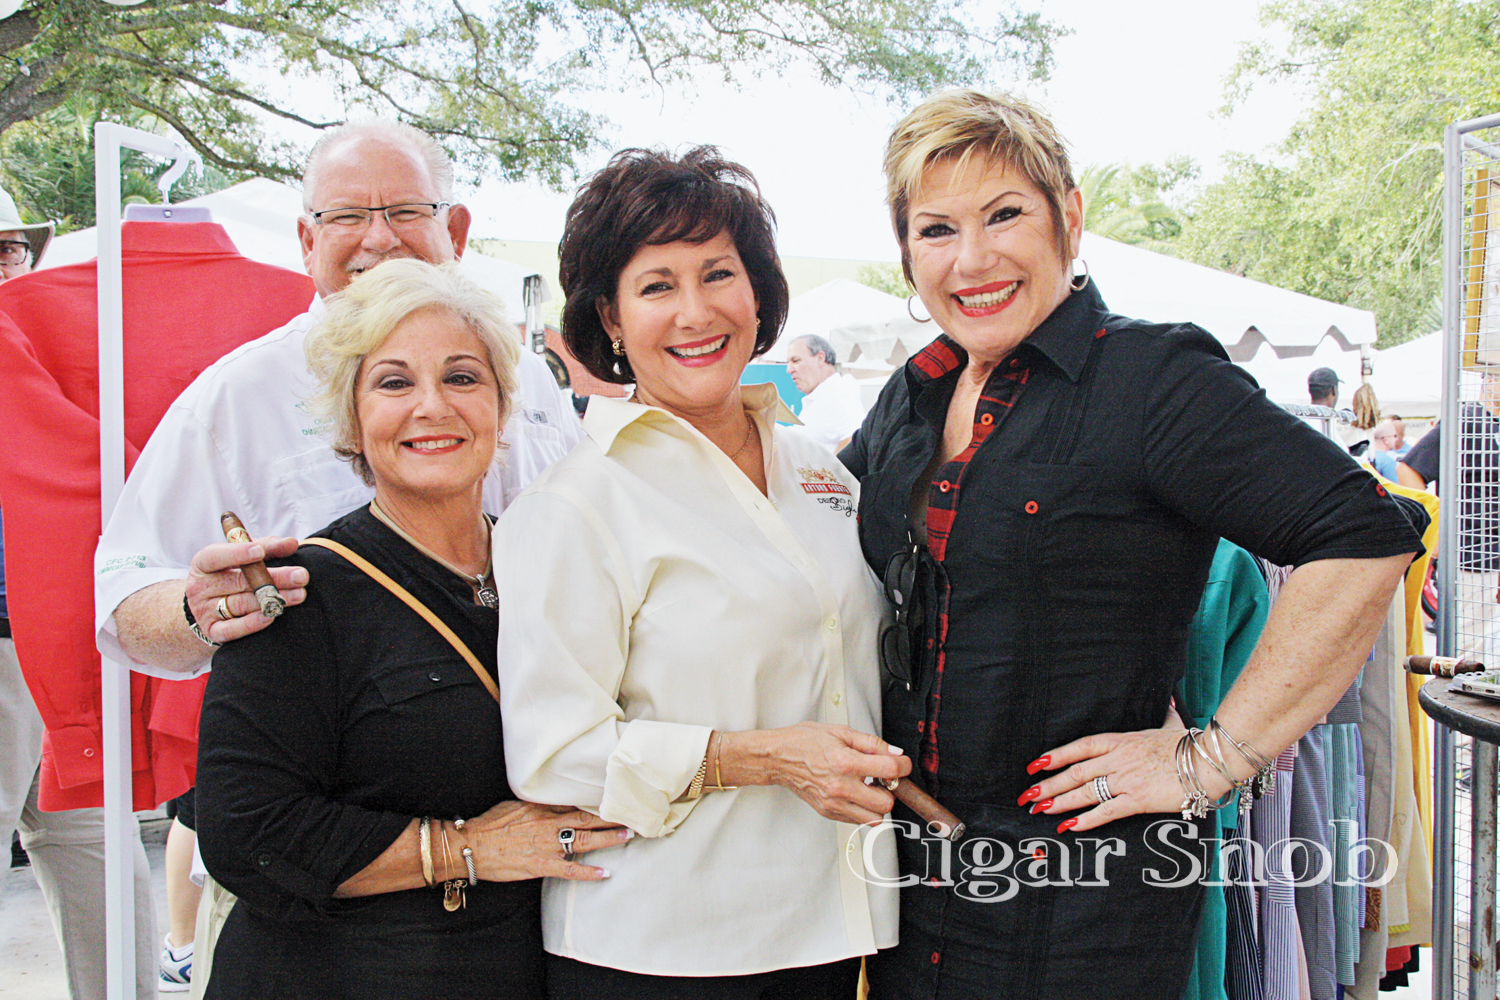 Danny and Toni Williams, Cynthia Fuente and Berta Bravo